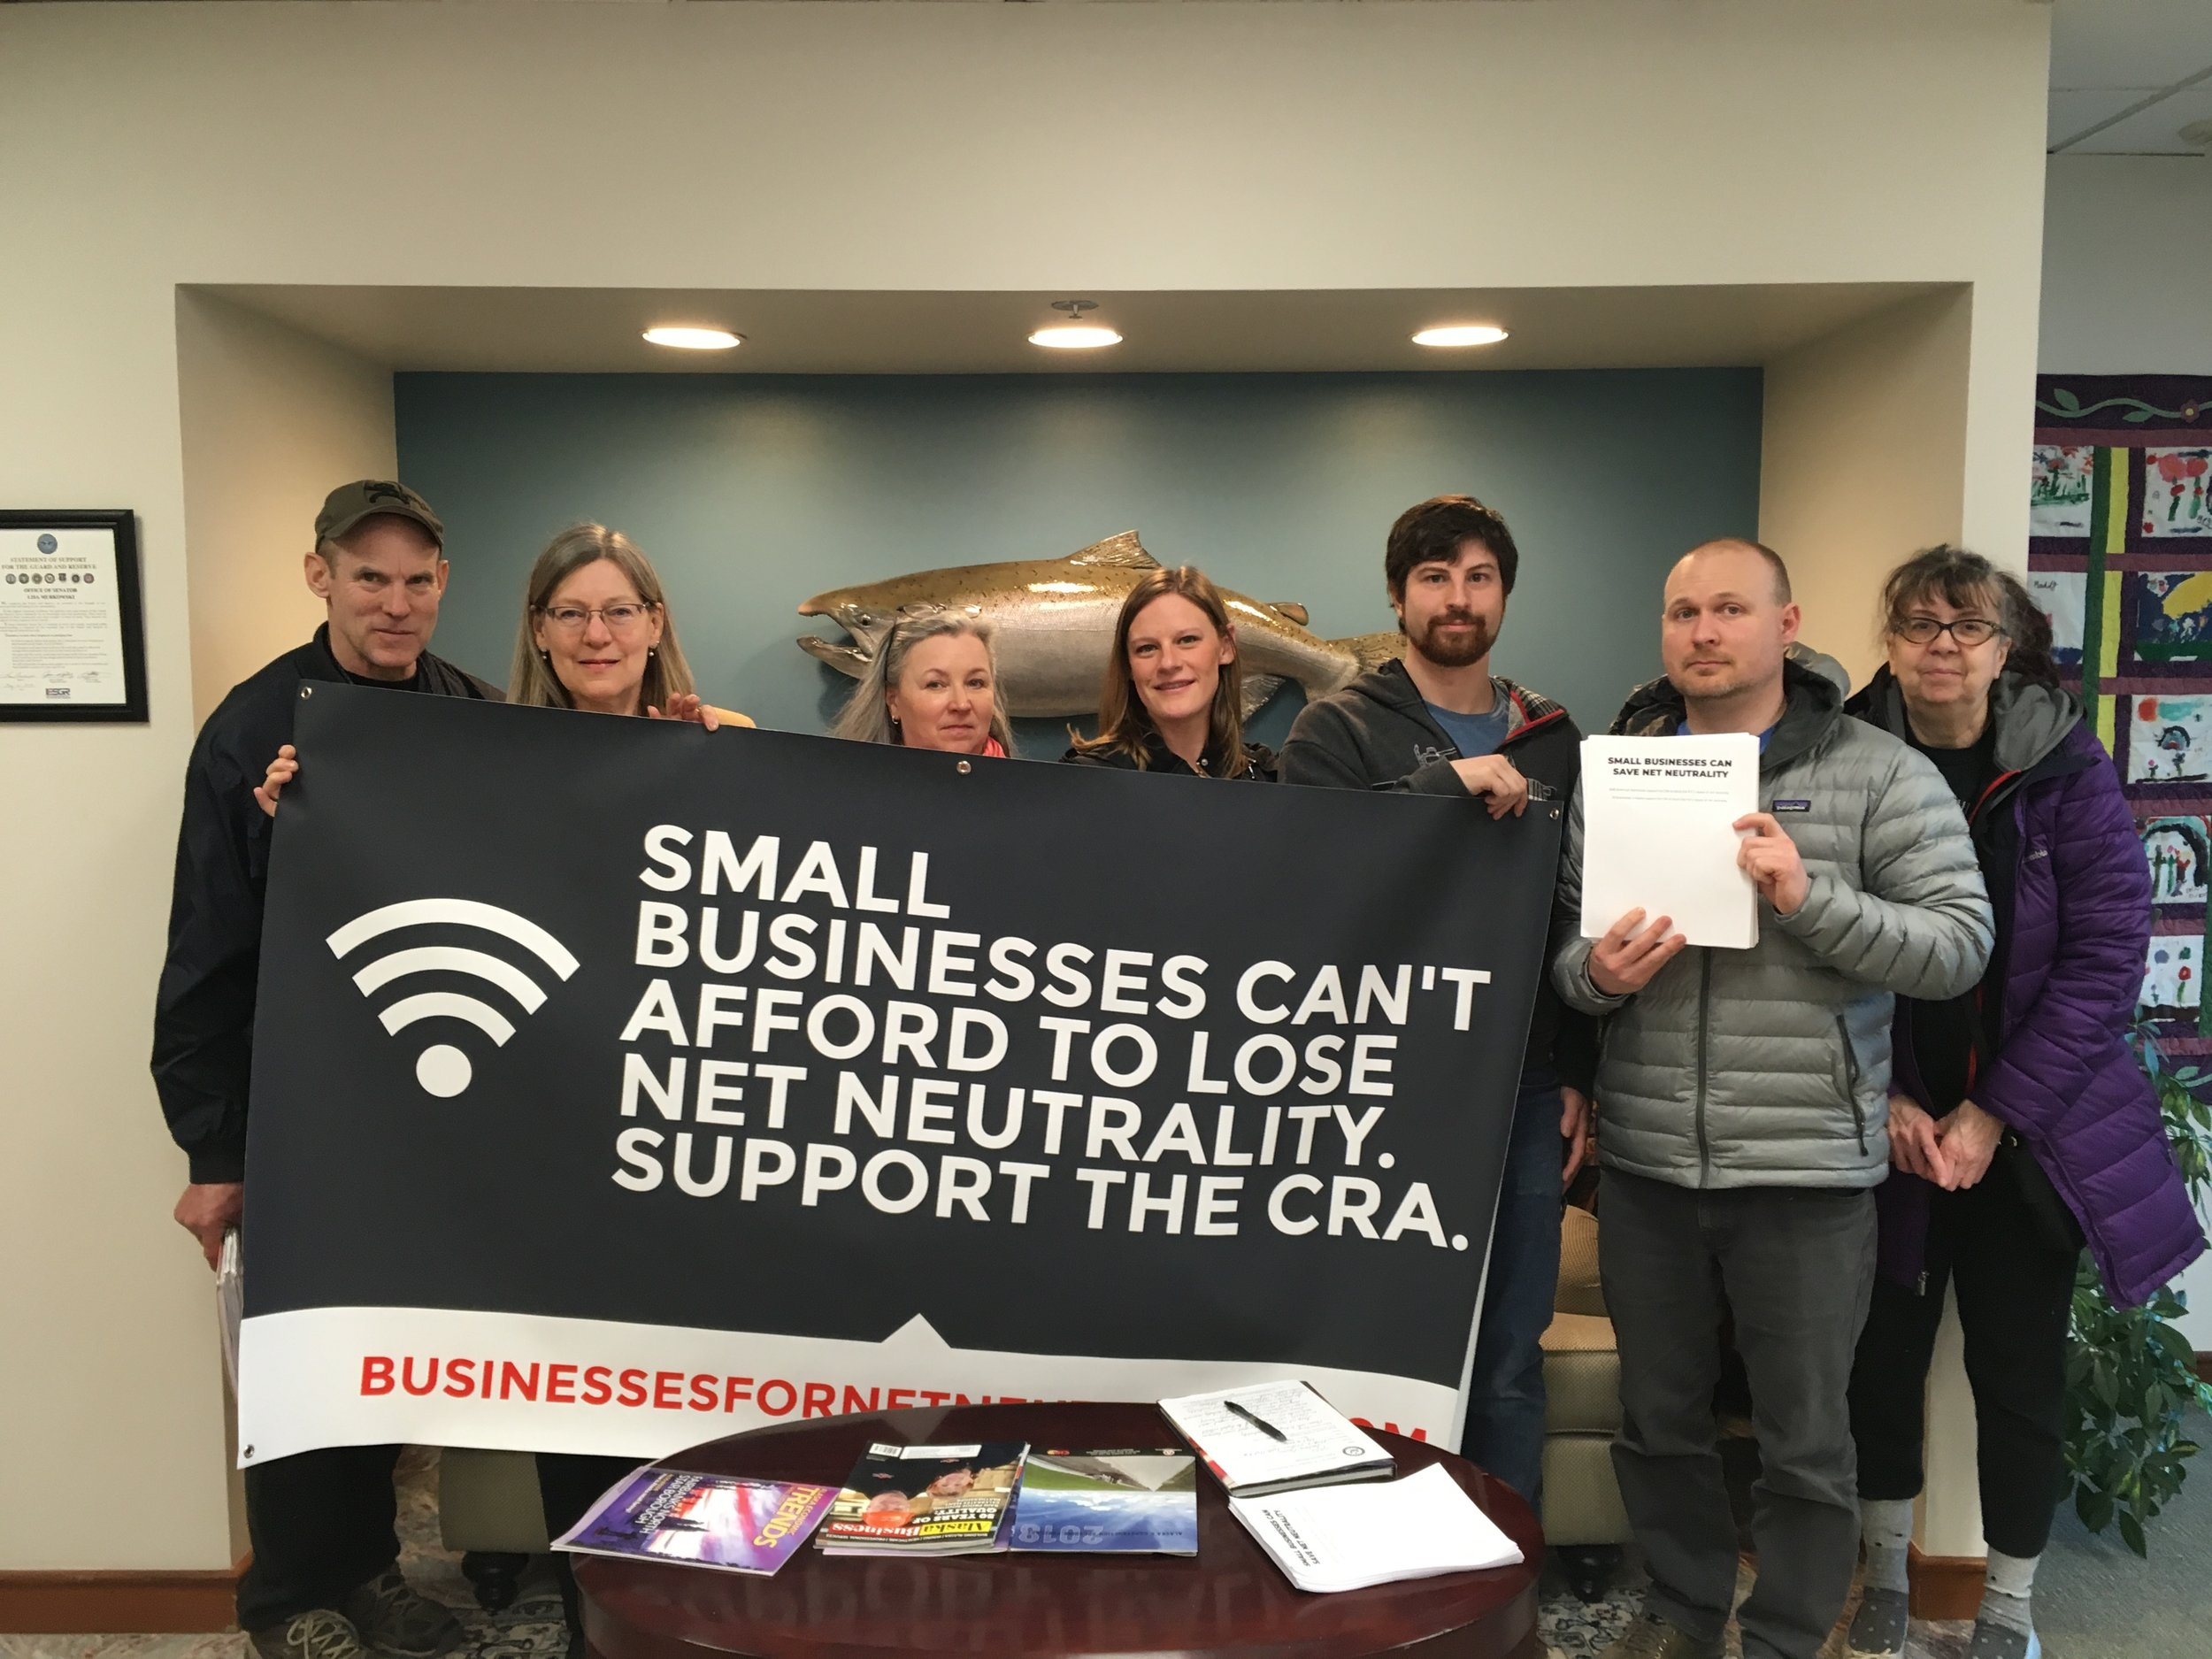 AKPIRG joined small business owners and grassroots activists in Anchorage the first week of May 2018 to stand in support of Net Neutrality protections.